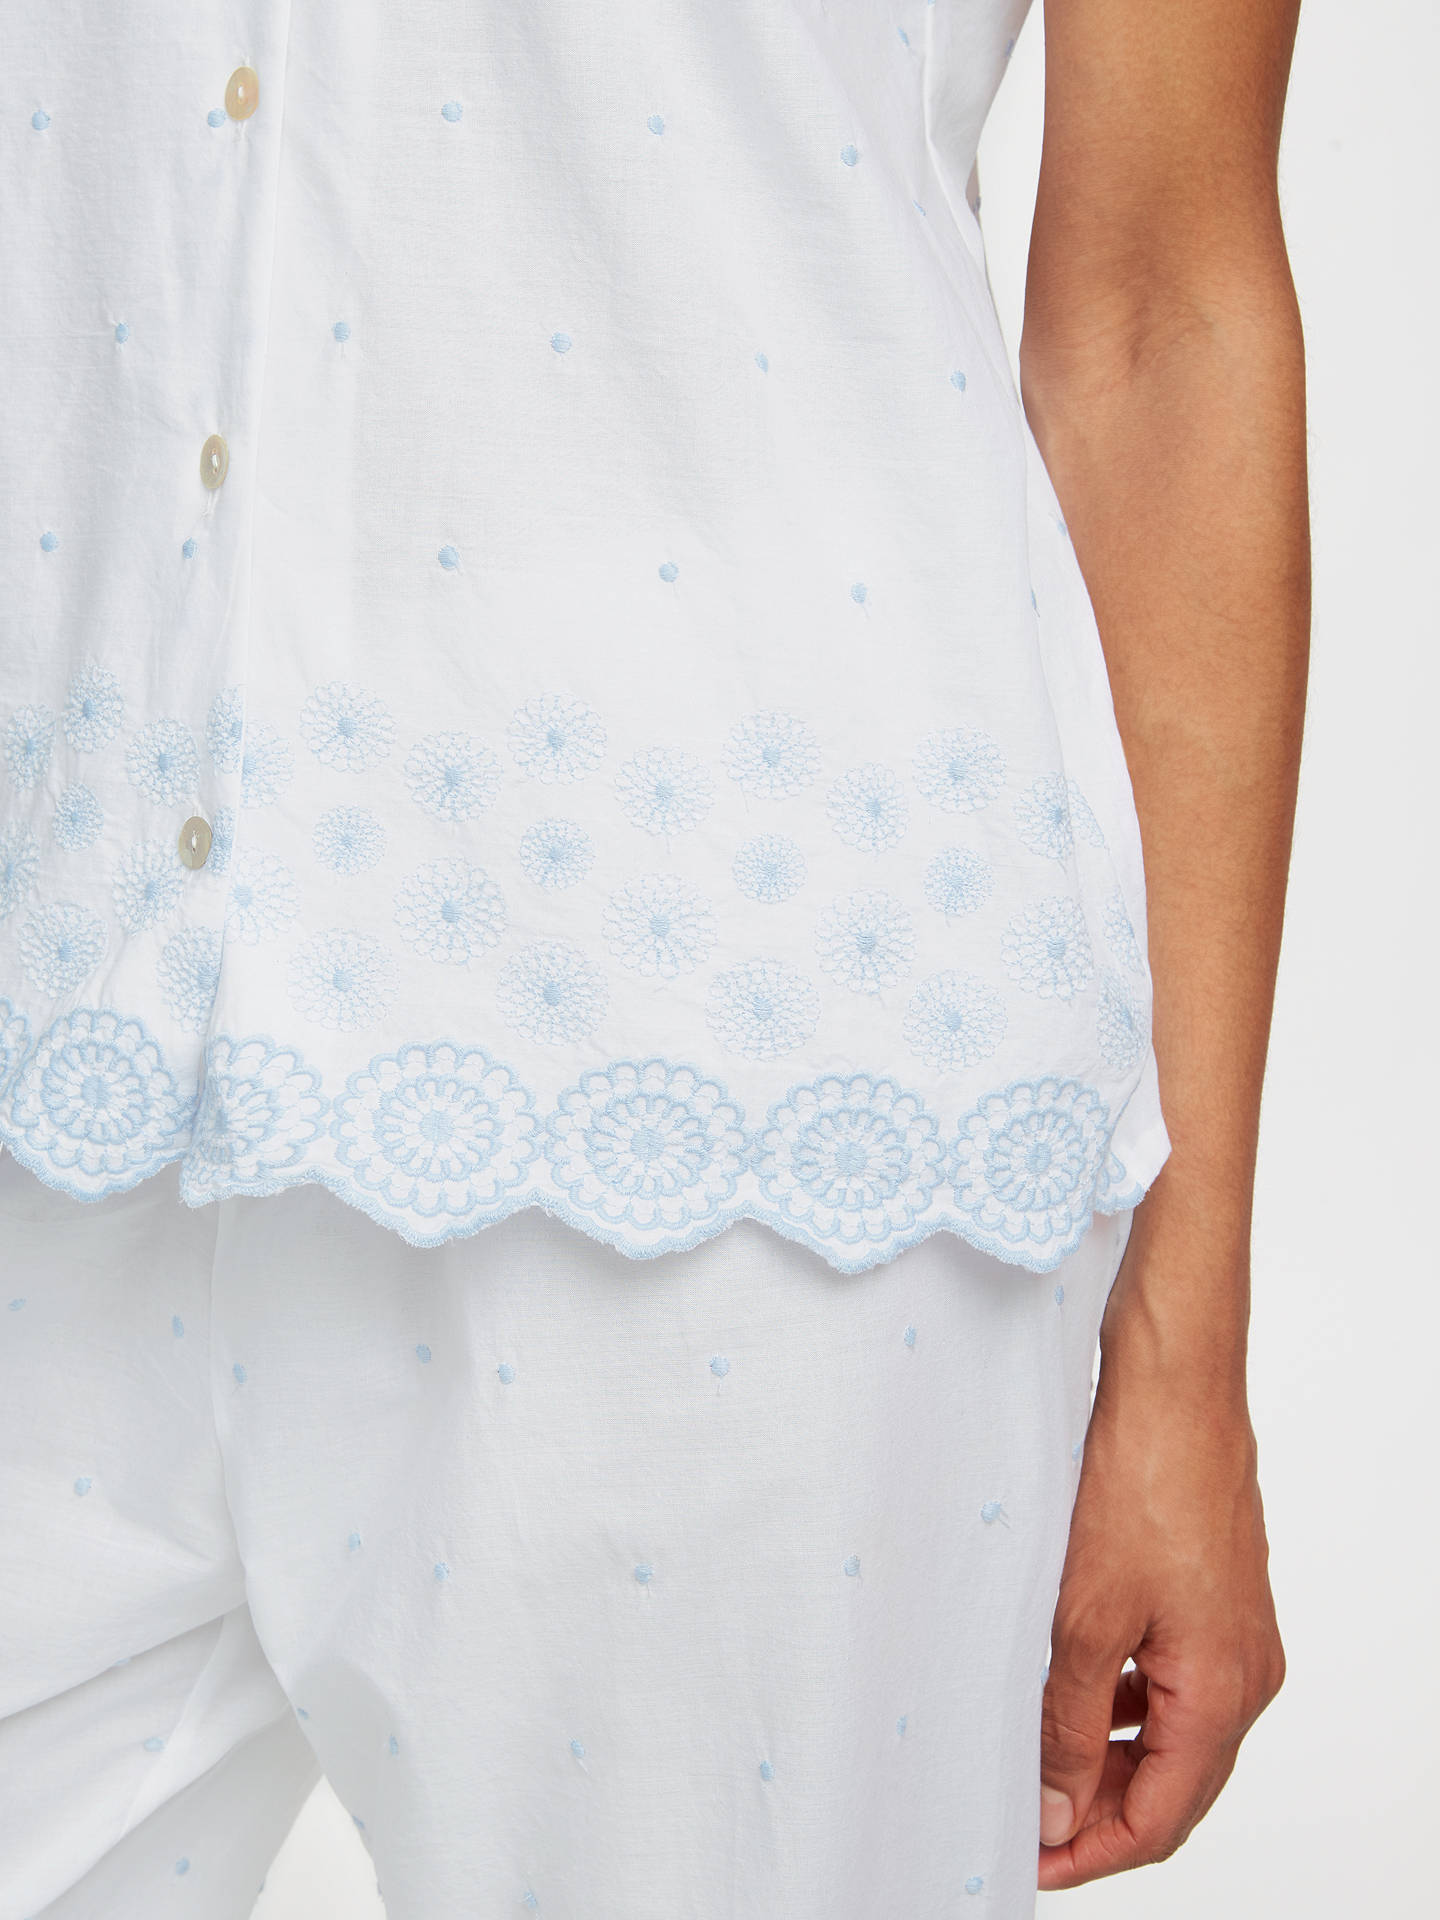 BuyJohn Lewis & Partners Circle Flower Embroidered Pyjama Set, White/Blue, 8 Online at johnlewis.com